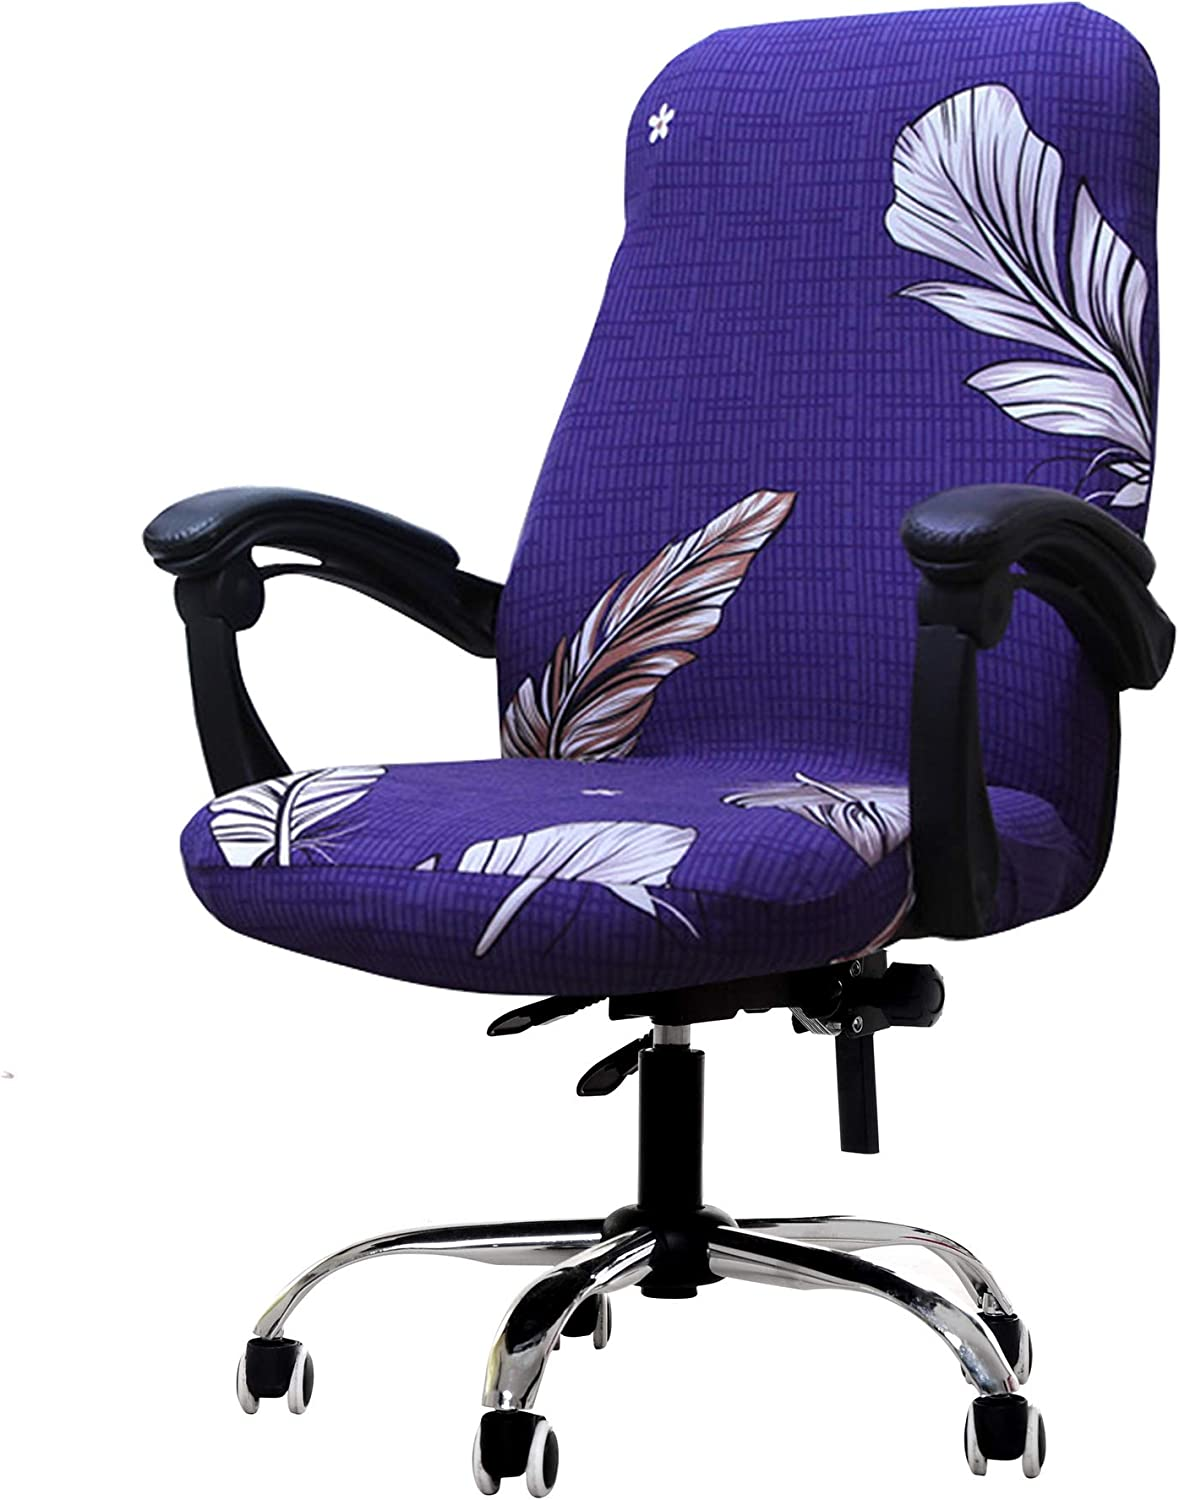 Deisy Dee Computer Office Chair Covers for Stretch Rotating Mid Back Chair Slipcovers Cover ONLY Chair Covers C162 (Feather)